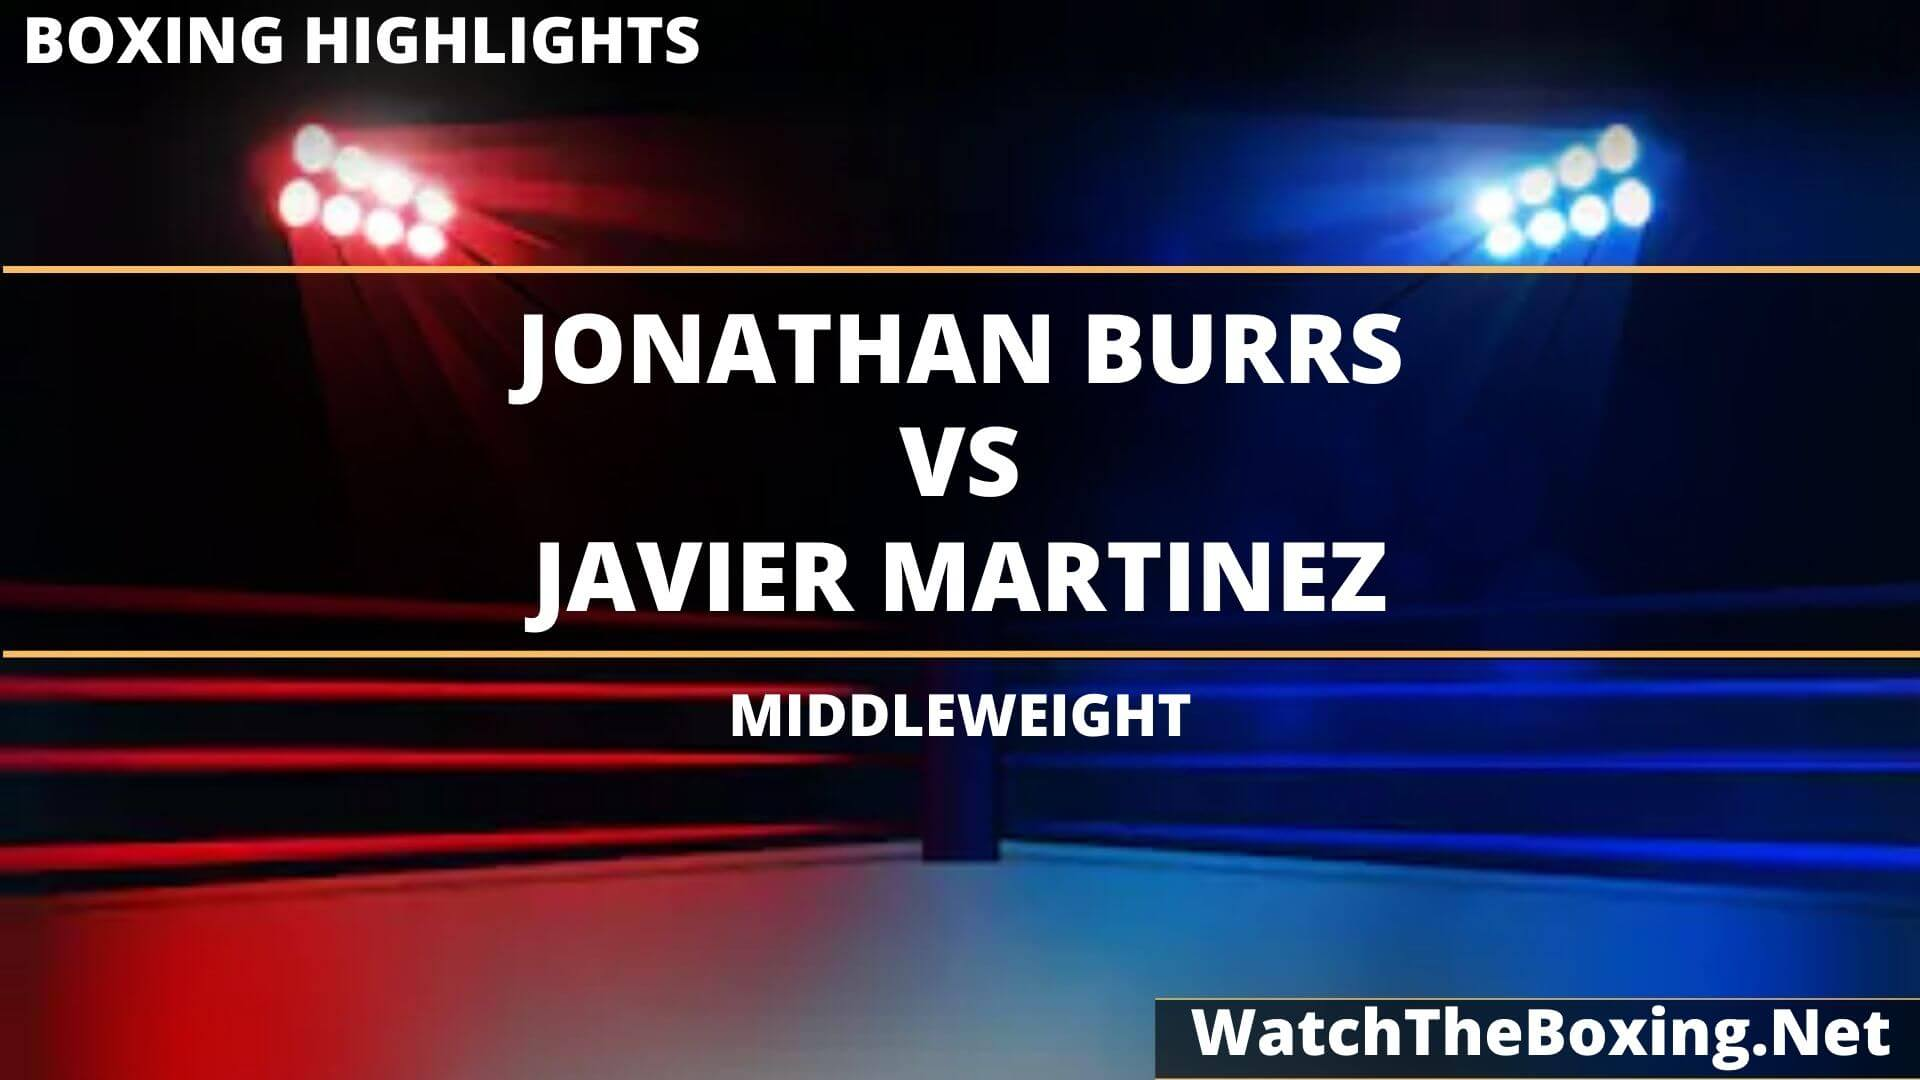 Jonathan Burrs Vs Javier Martinez Highlights 2020 Middleweight